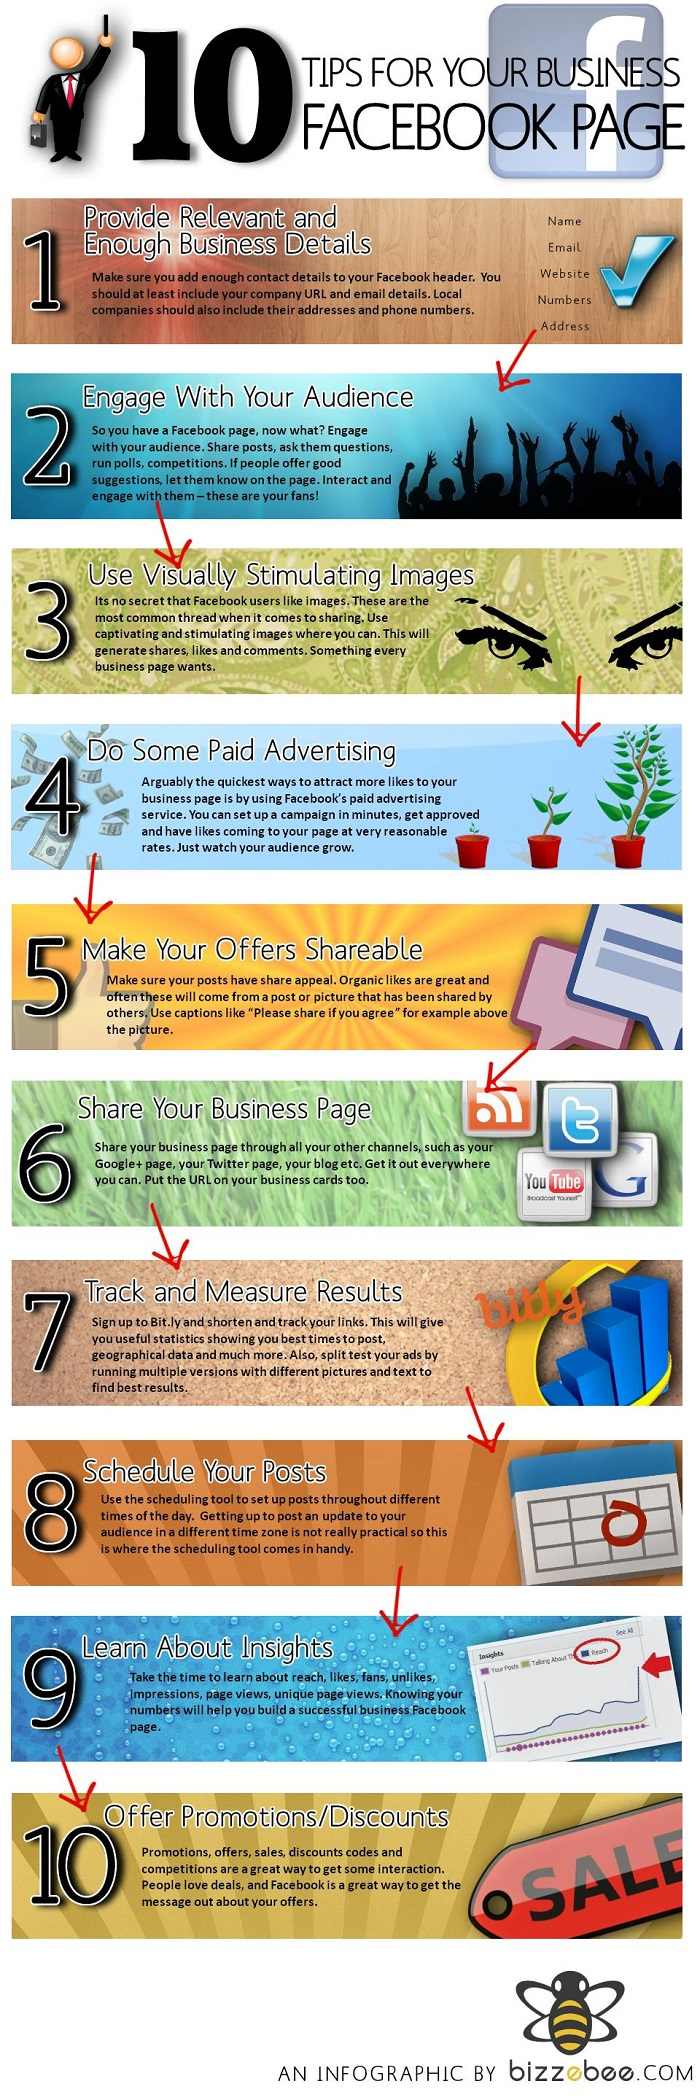 Facebook Tips Infographic